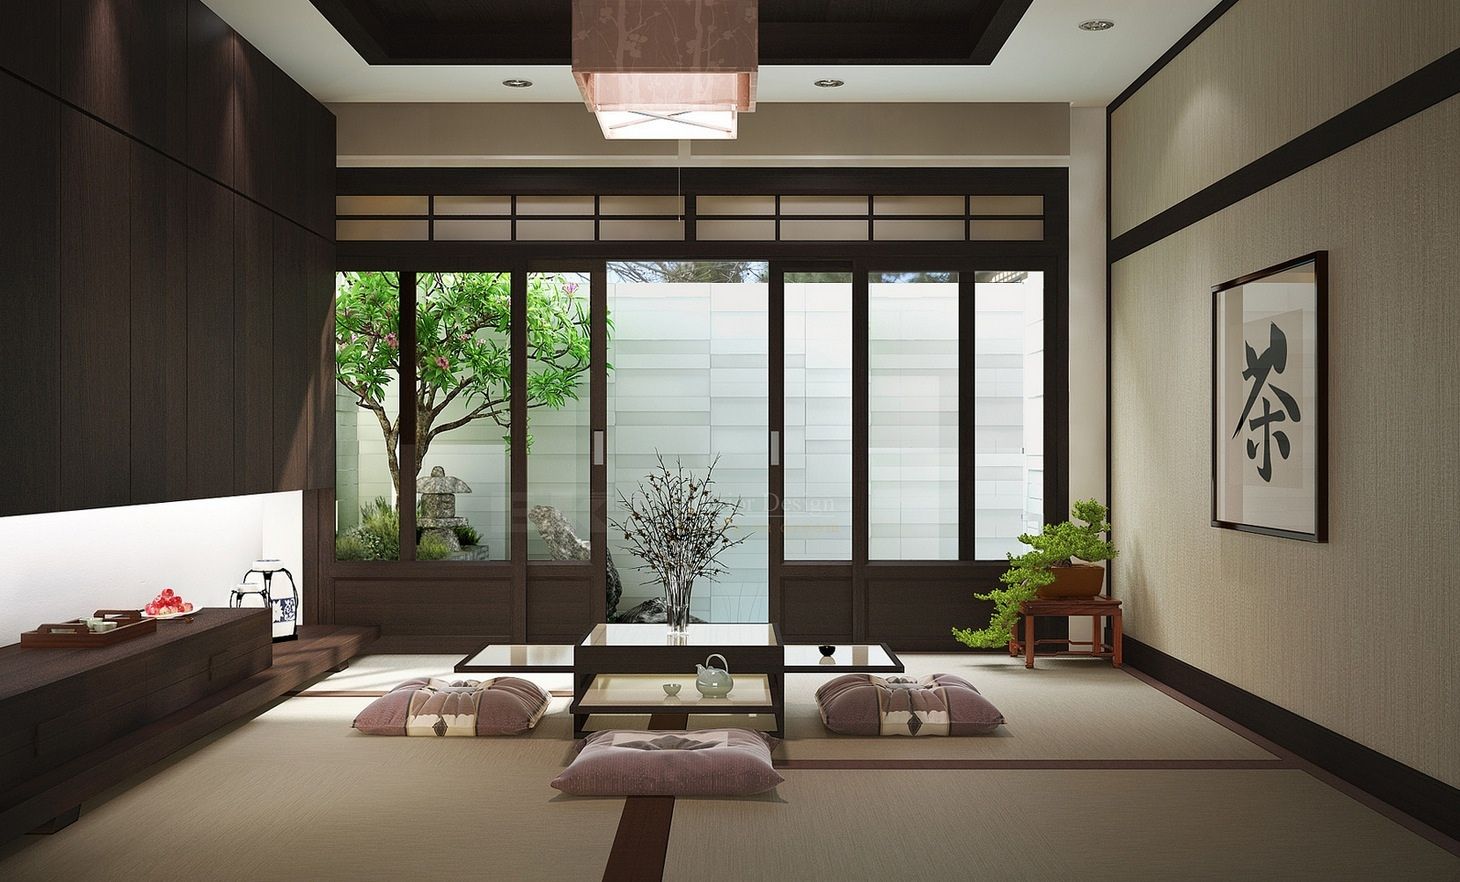 Zen inspired interior design for Interieur ideeen keuken